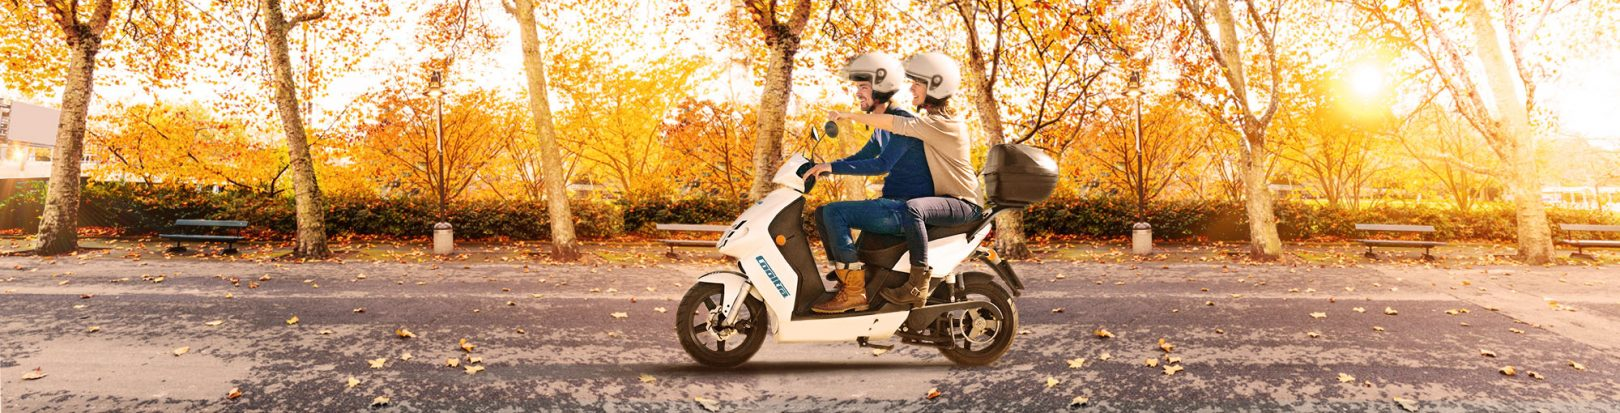 cooltra scooter rental motorcycle electric